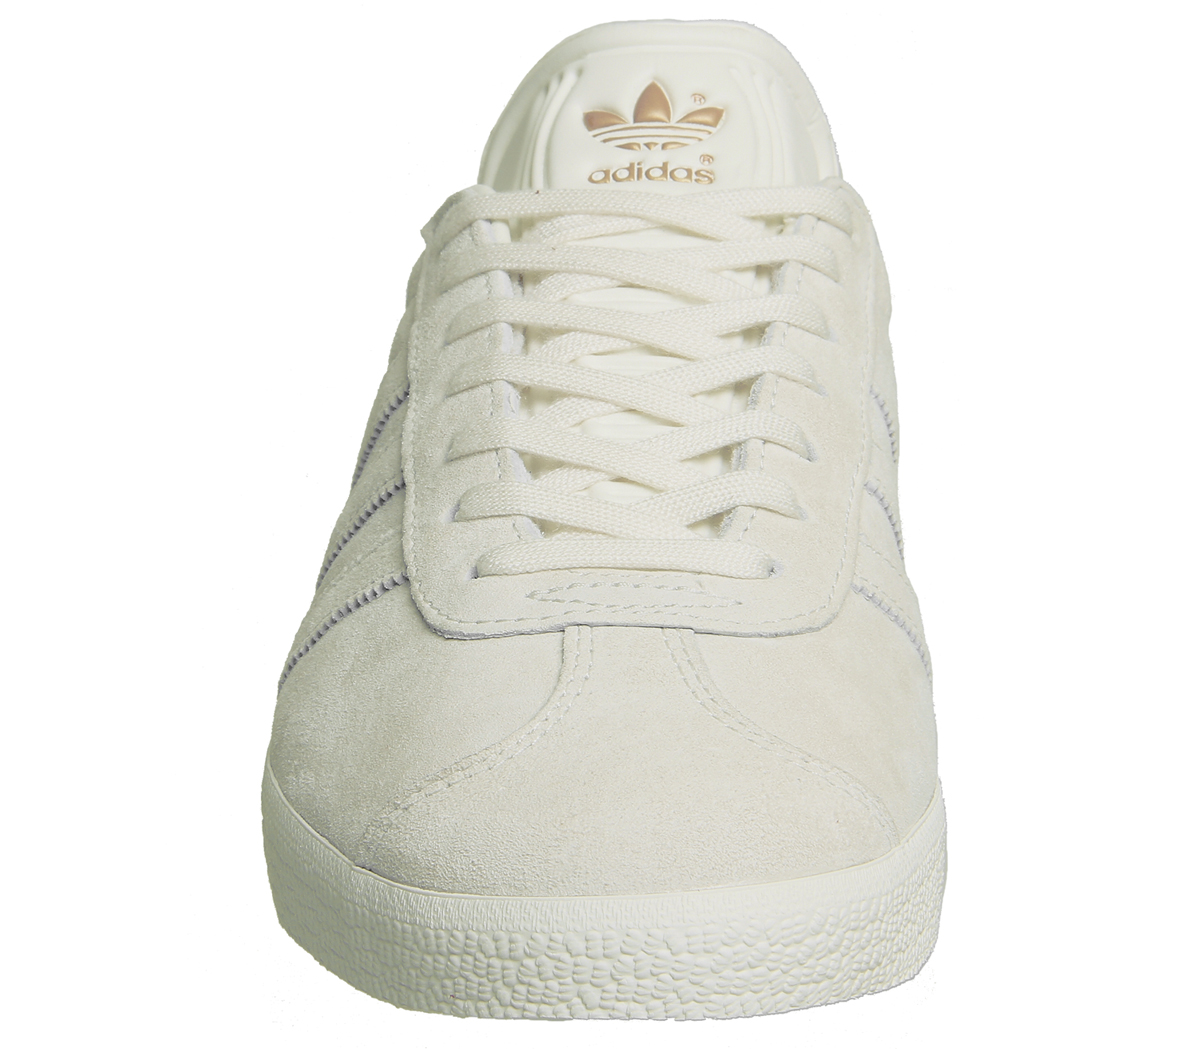 women's adidas gazelle trainers